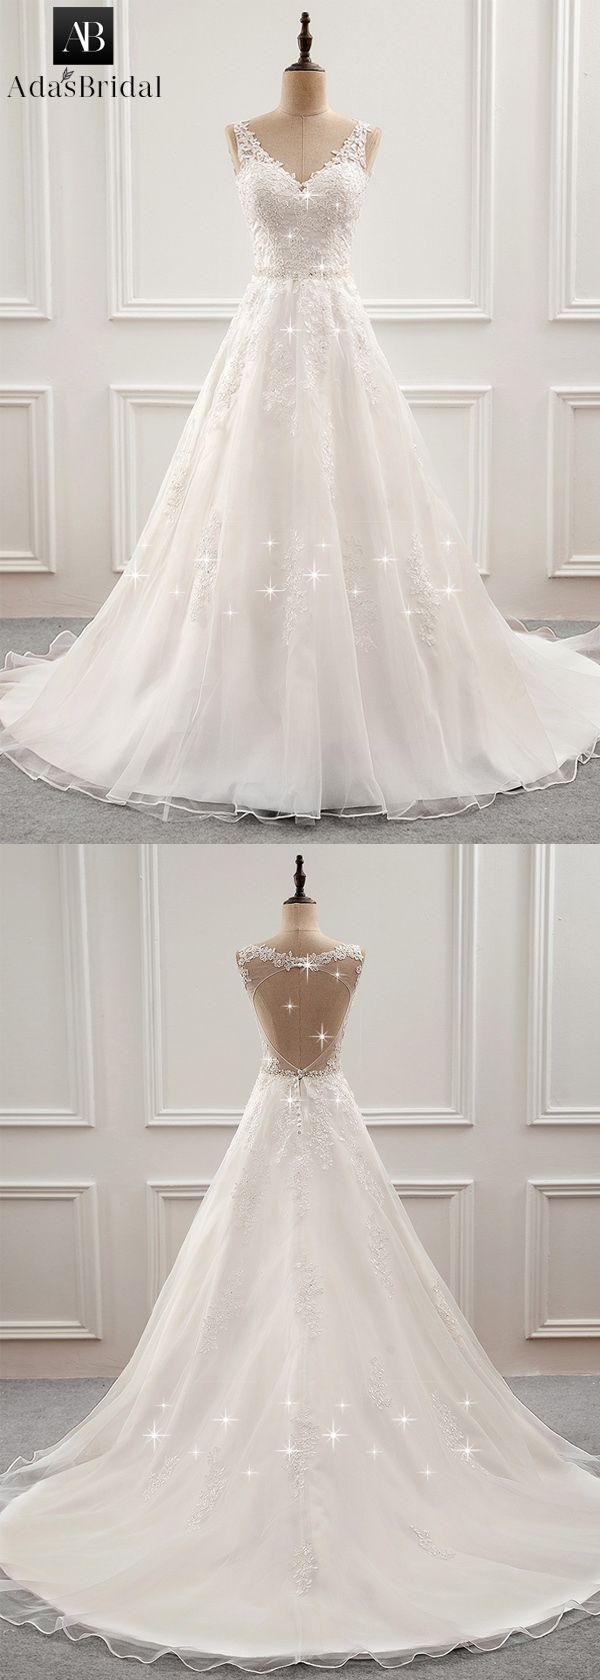 Fabulous Tulle & Organza V-neck Neckline A-Line Wedding Dress With ...